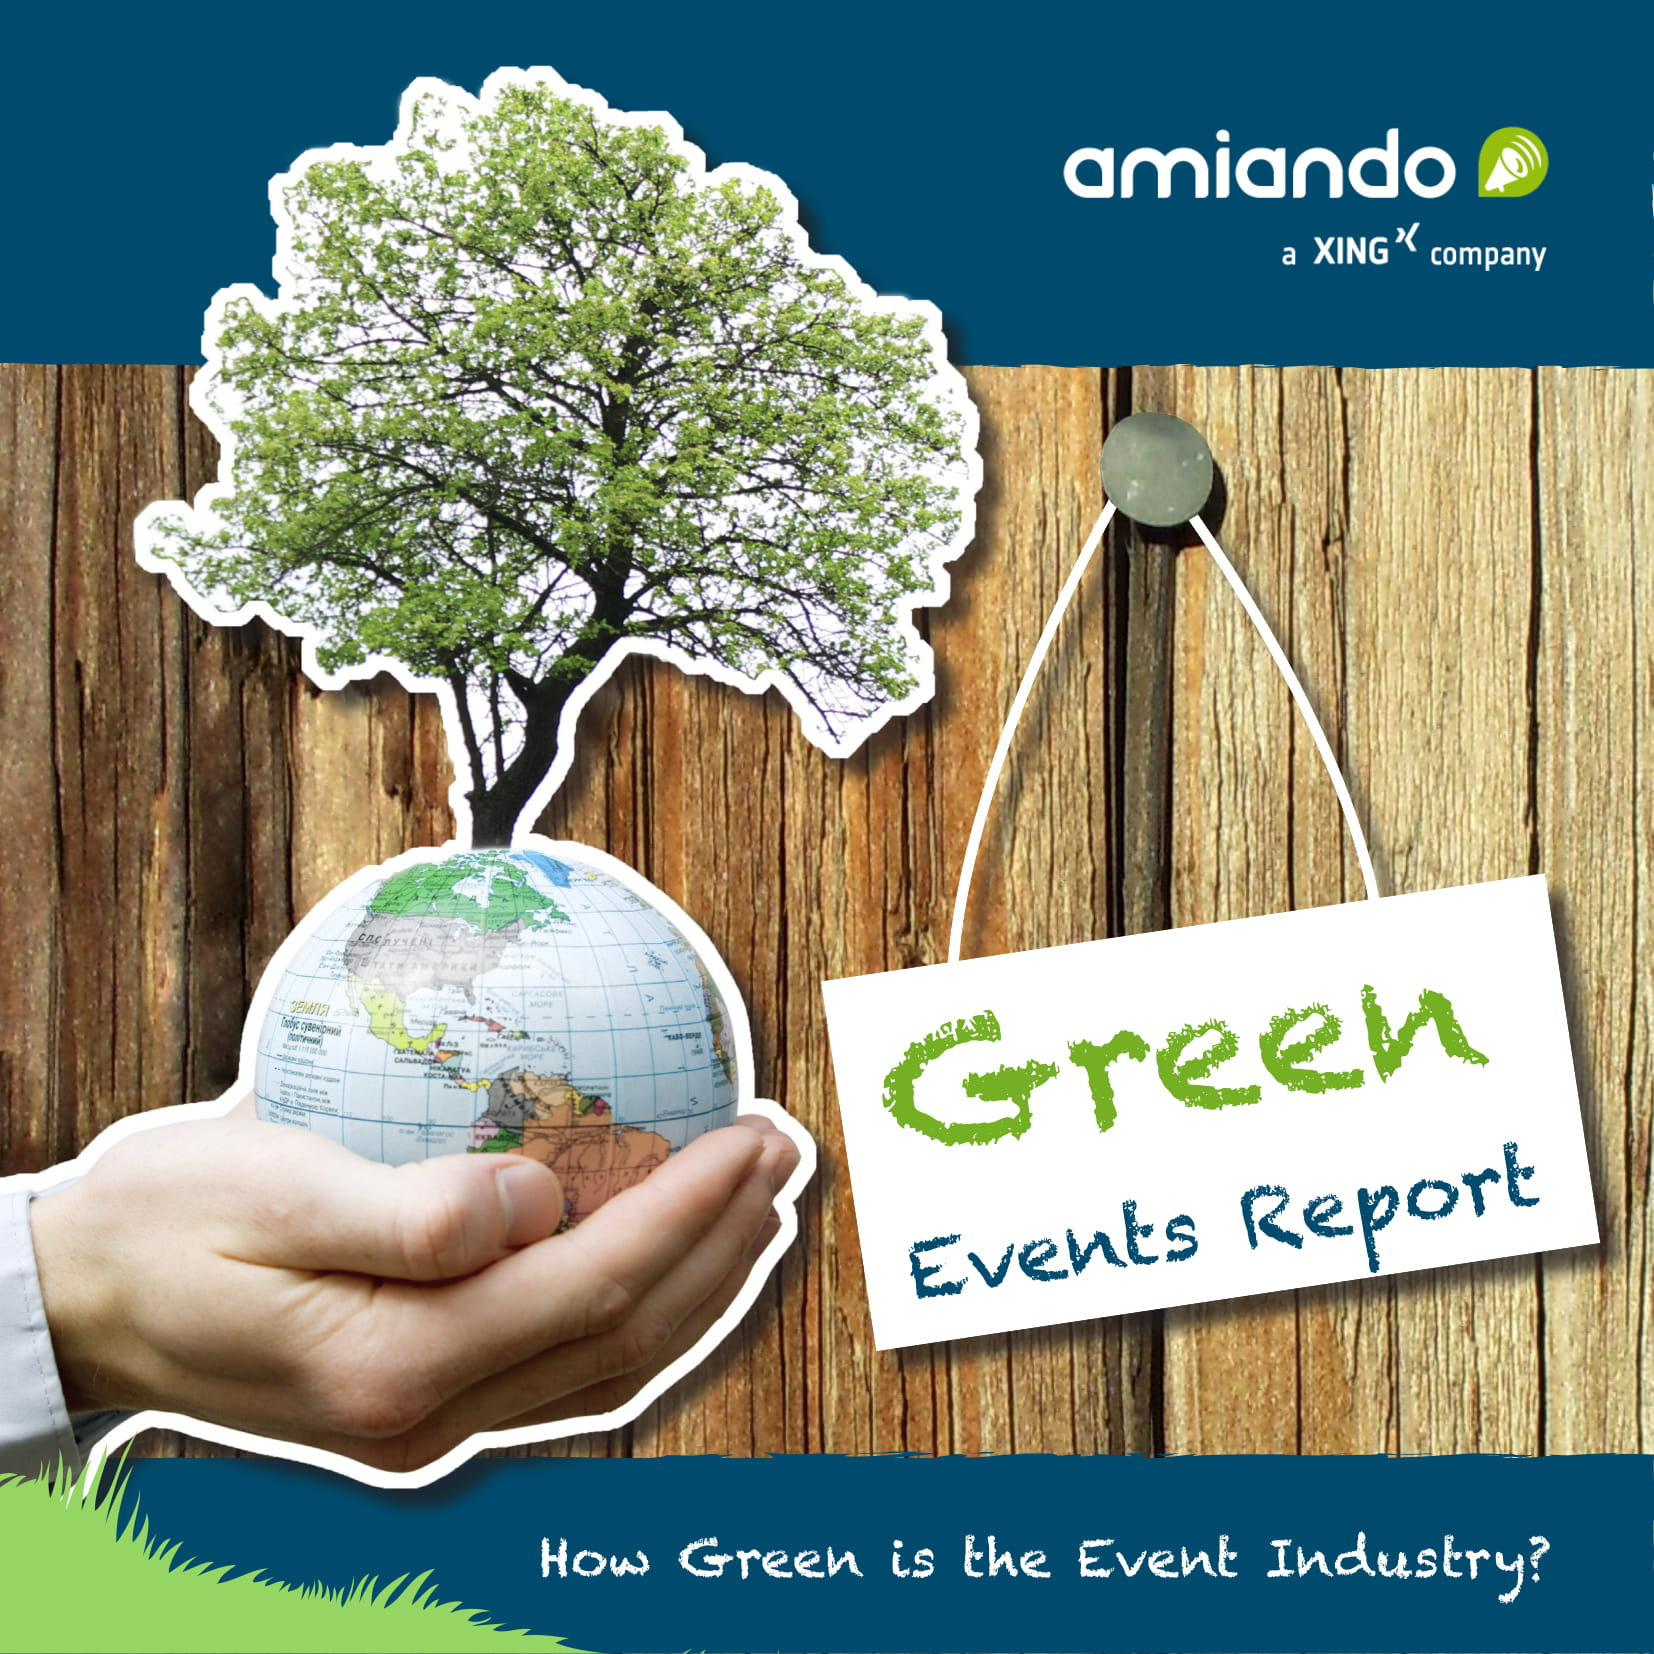 green events report example